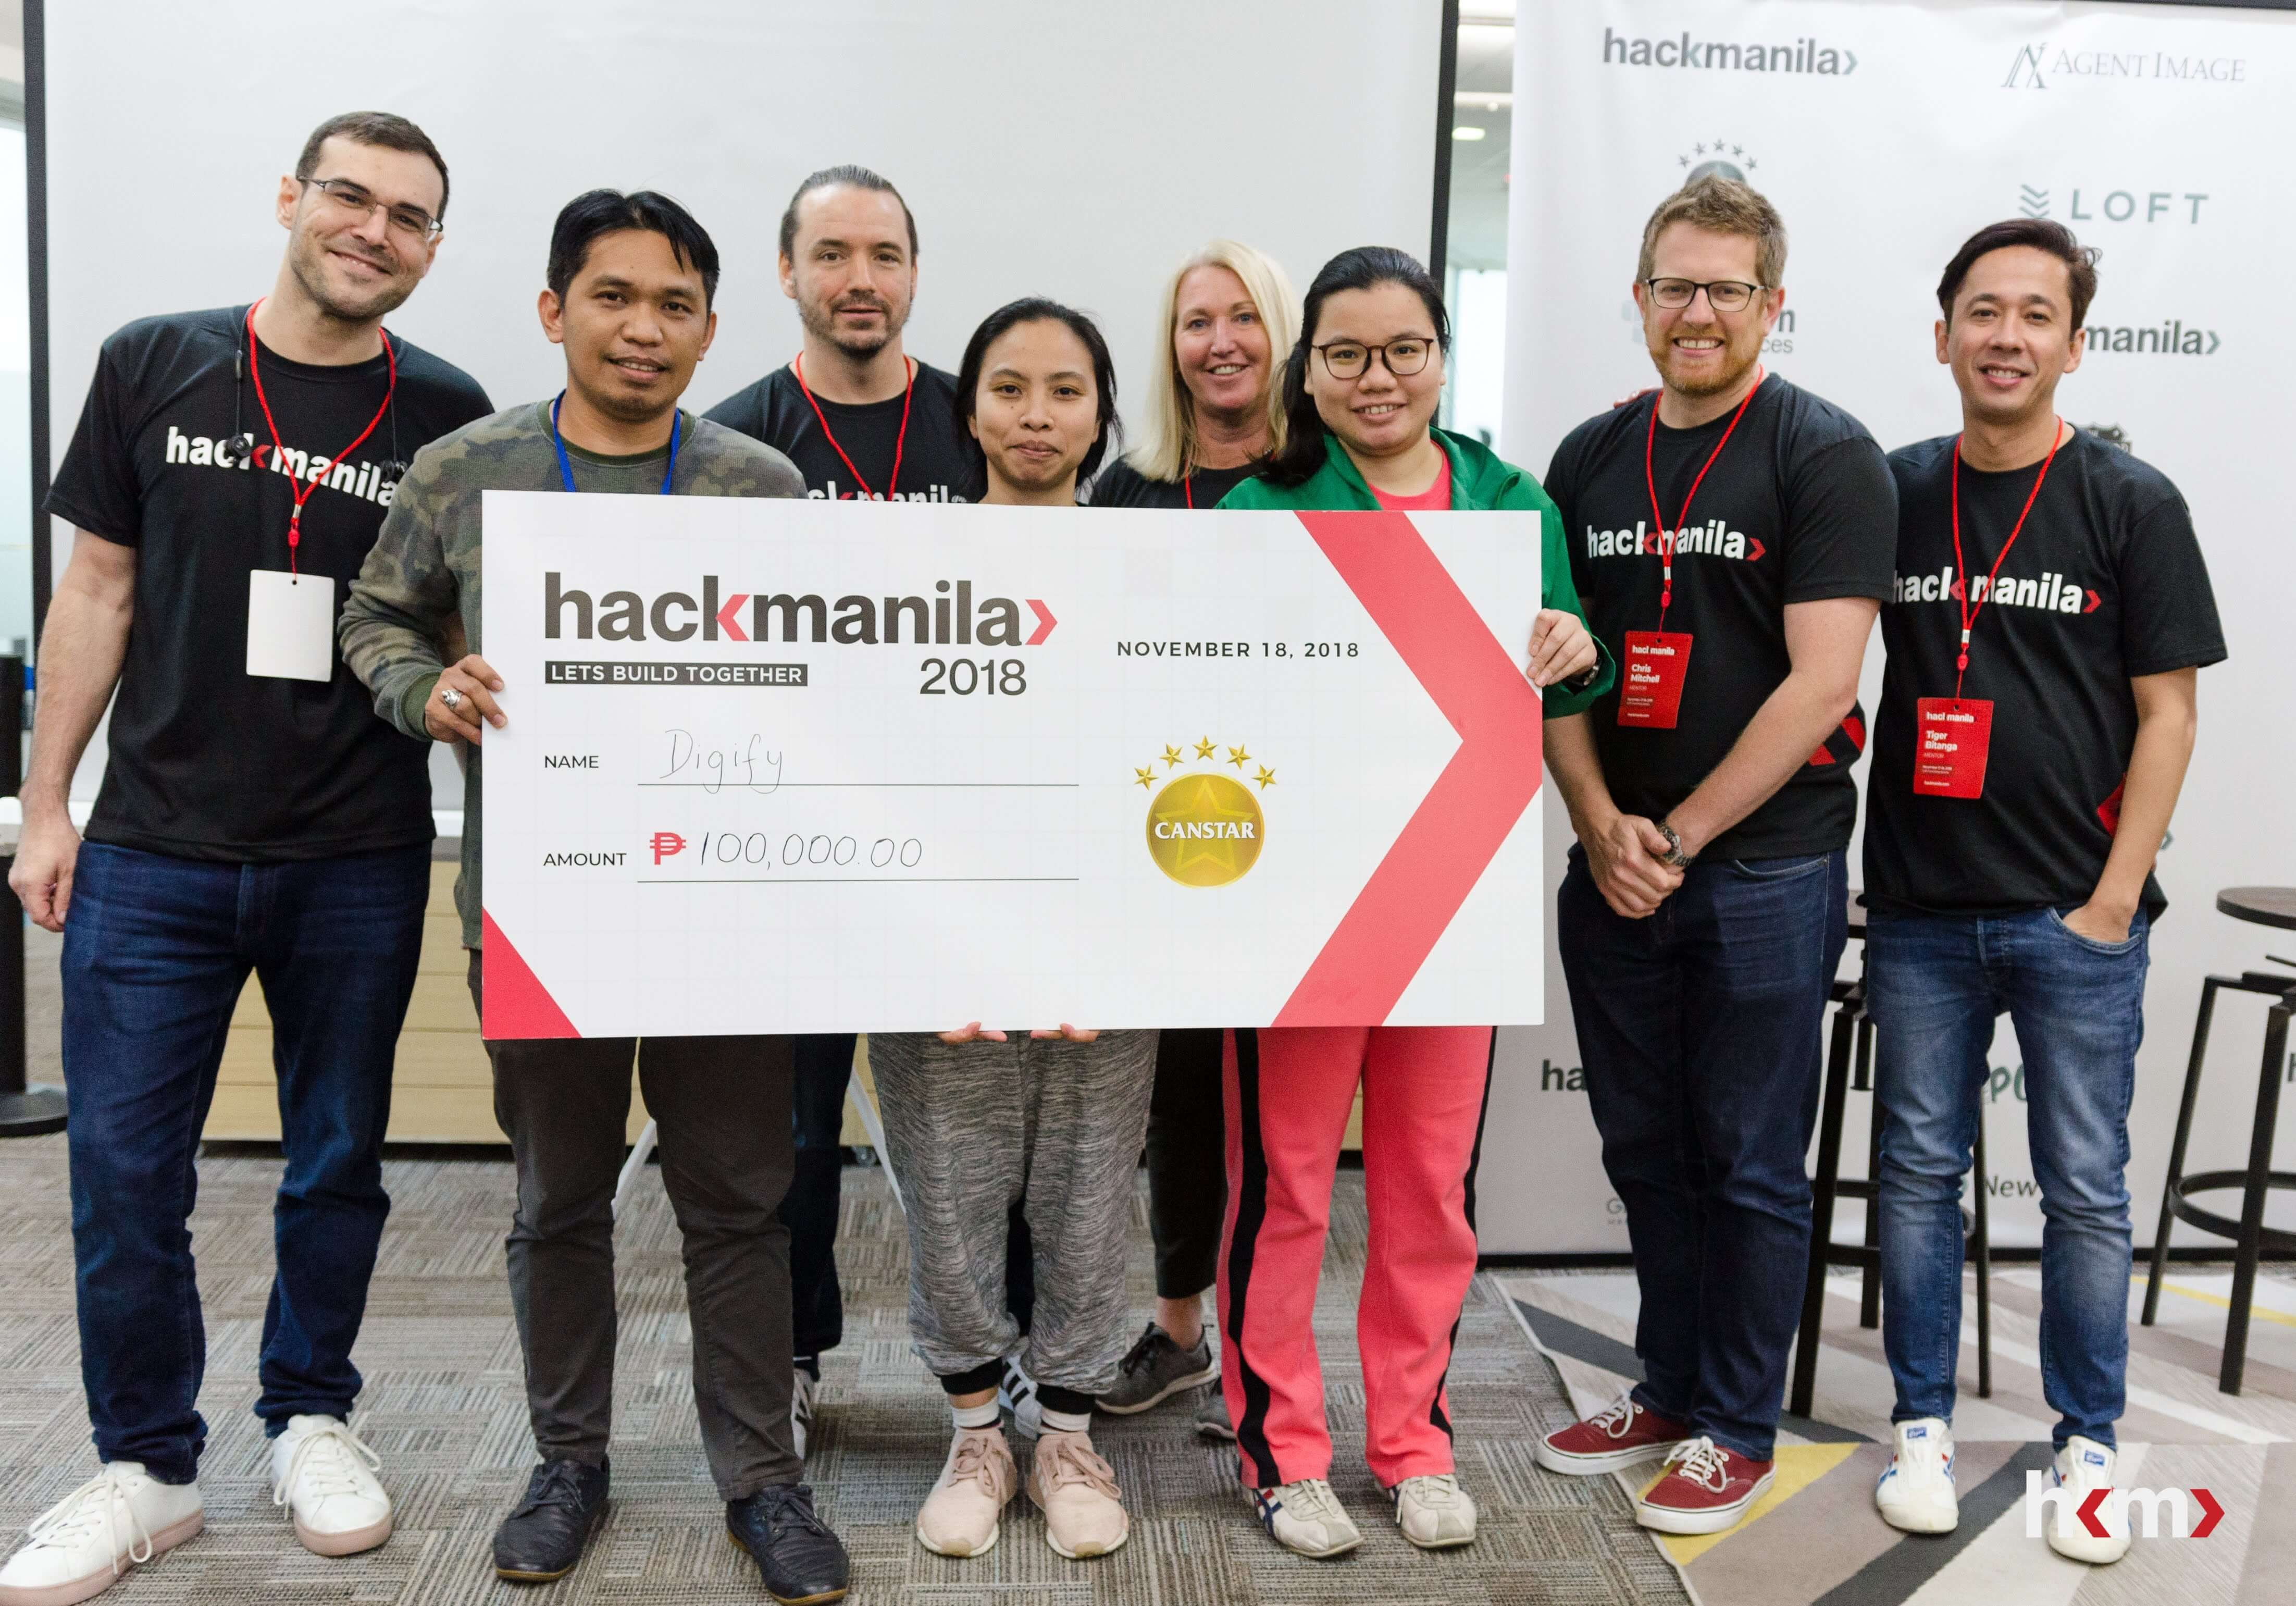 Hack Manila AutoBook Challenge Winner: Team Digify, with August 99 and Canstar mentors